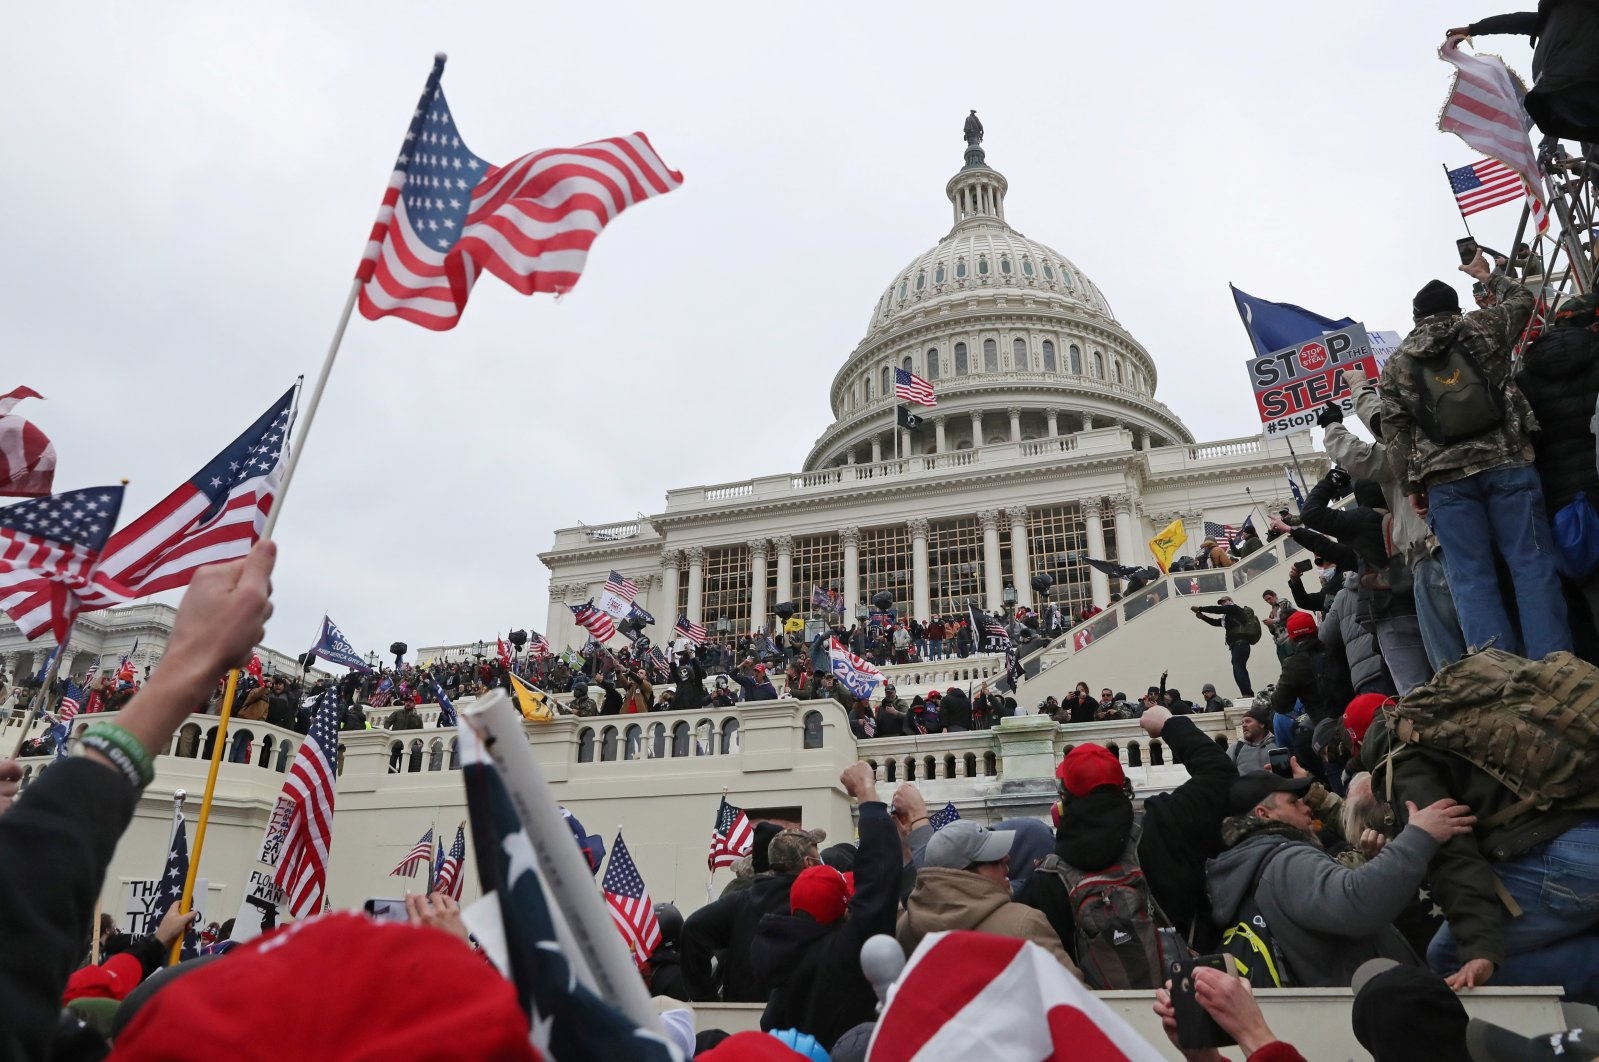 A mob of supporters of U.S. President Donald Trump storm the U.S. Capitol Building in Washington, D.C., U.S., Jan. 6, 2021. (Reuters Photo)